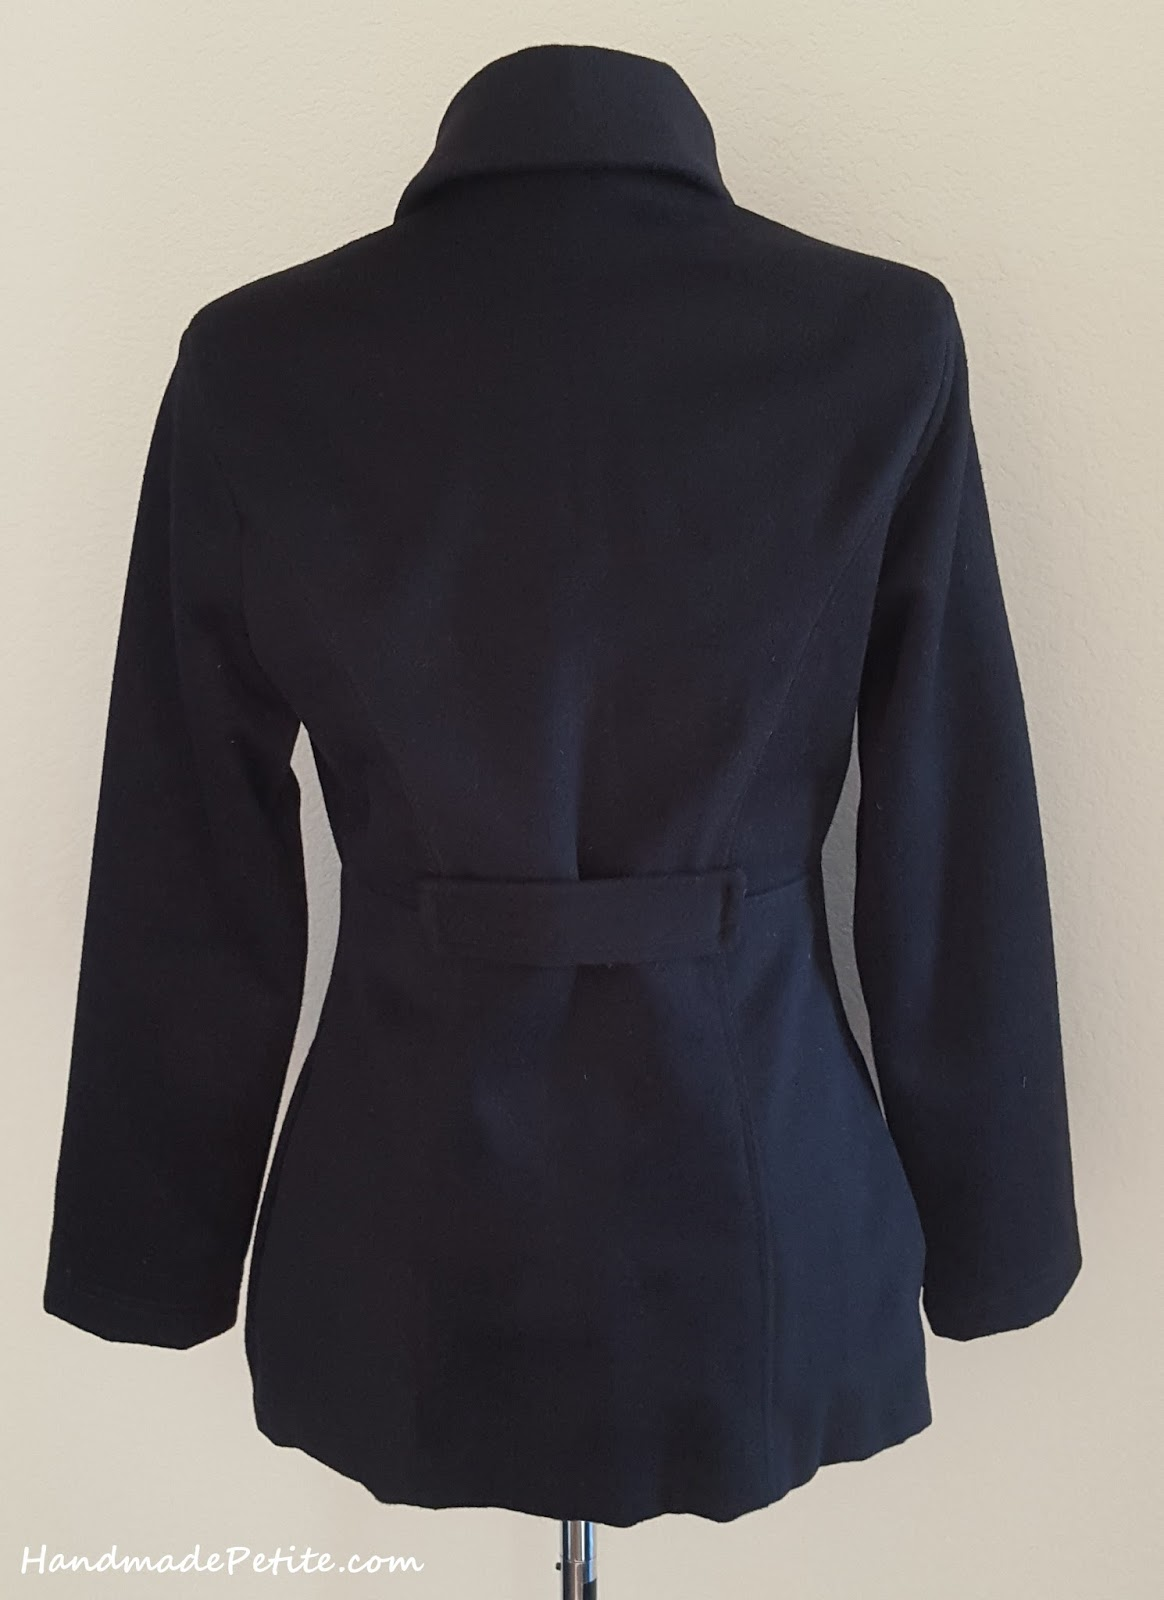 Sewn coat with added placket